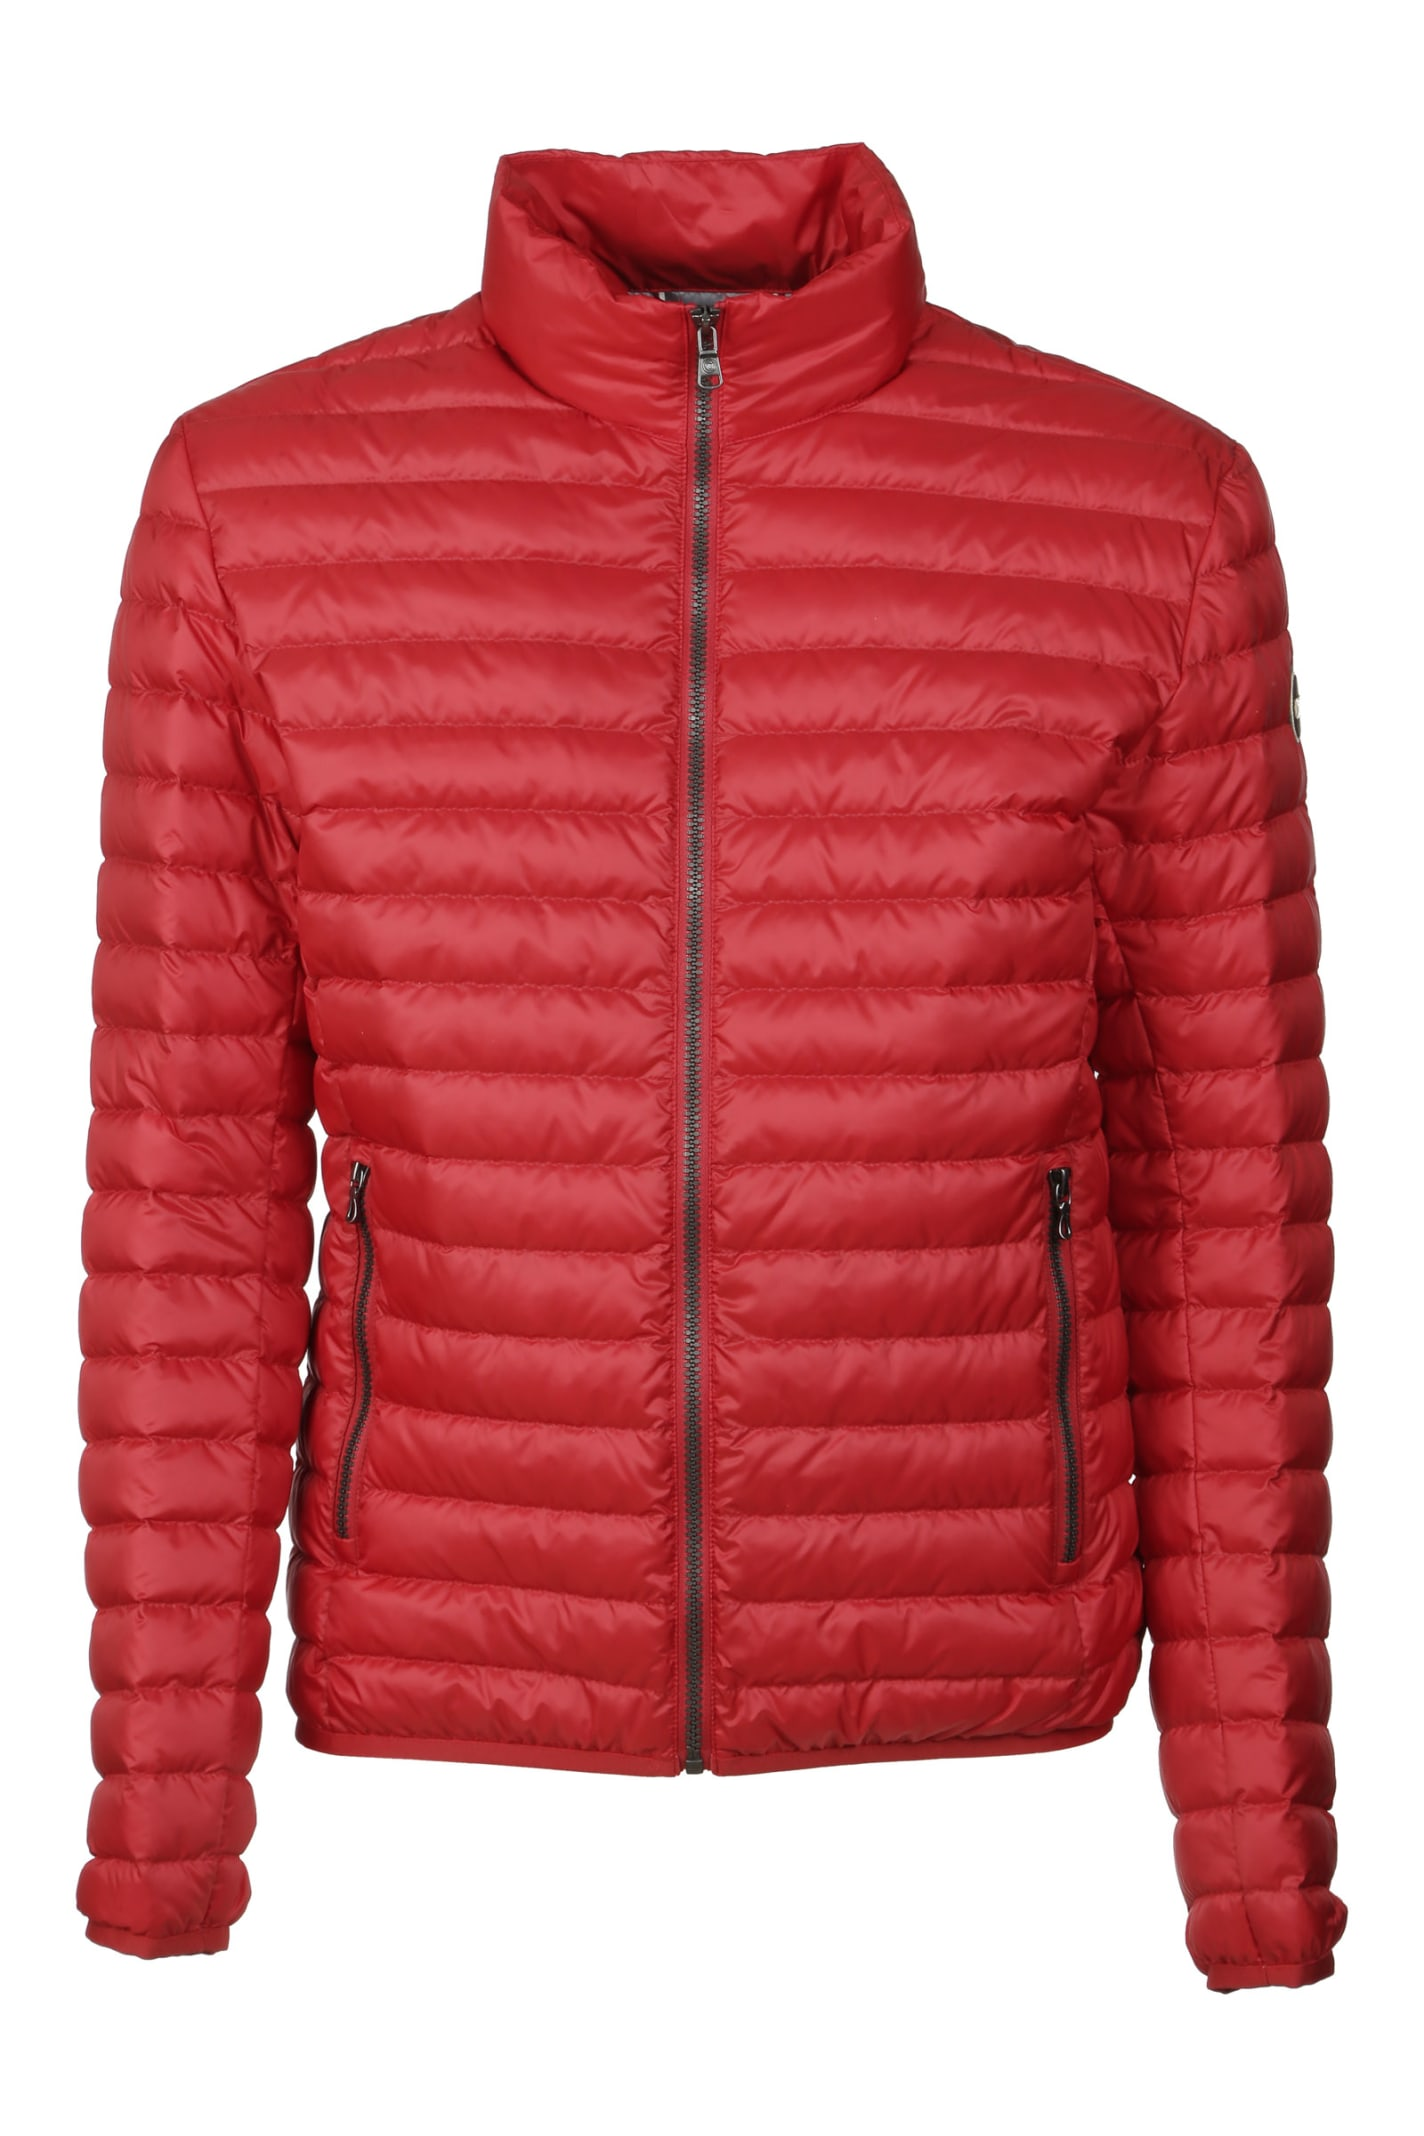 the latest 18c0d c7321 Colmar Collared Padded Jacket